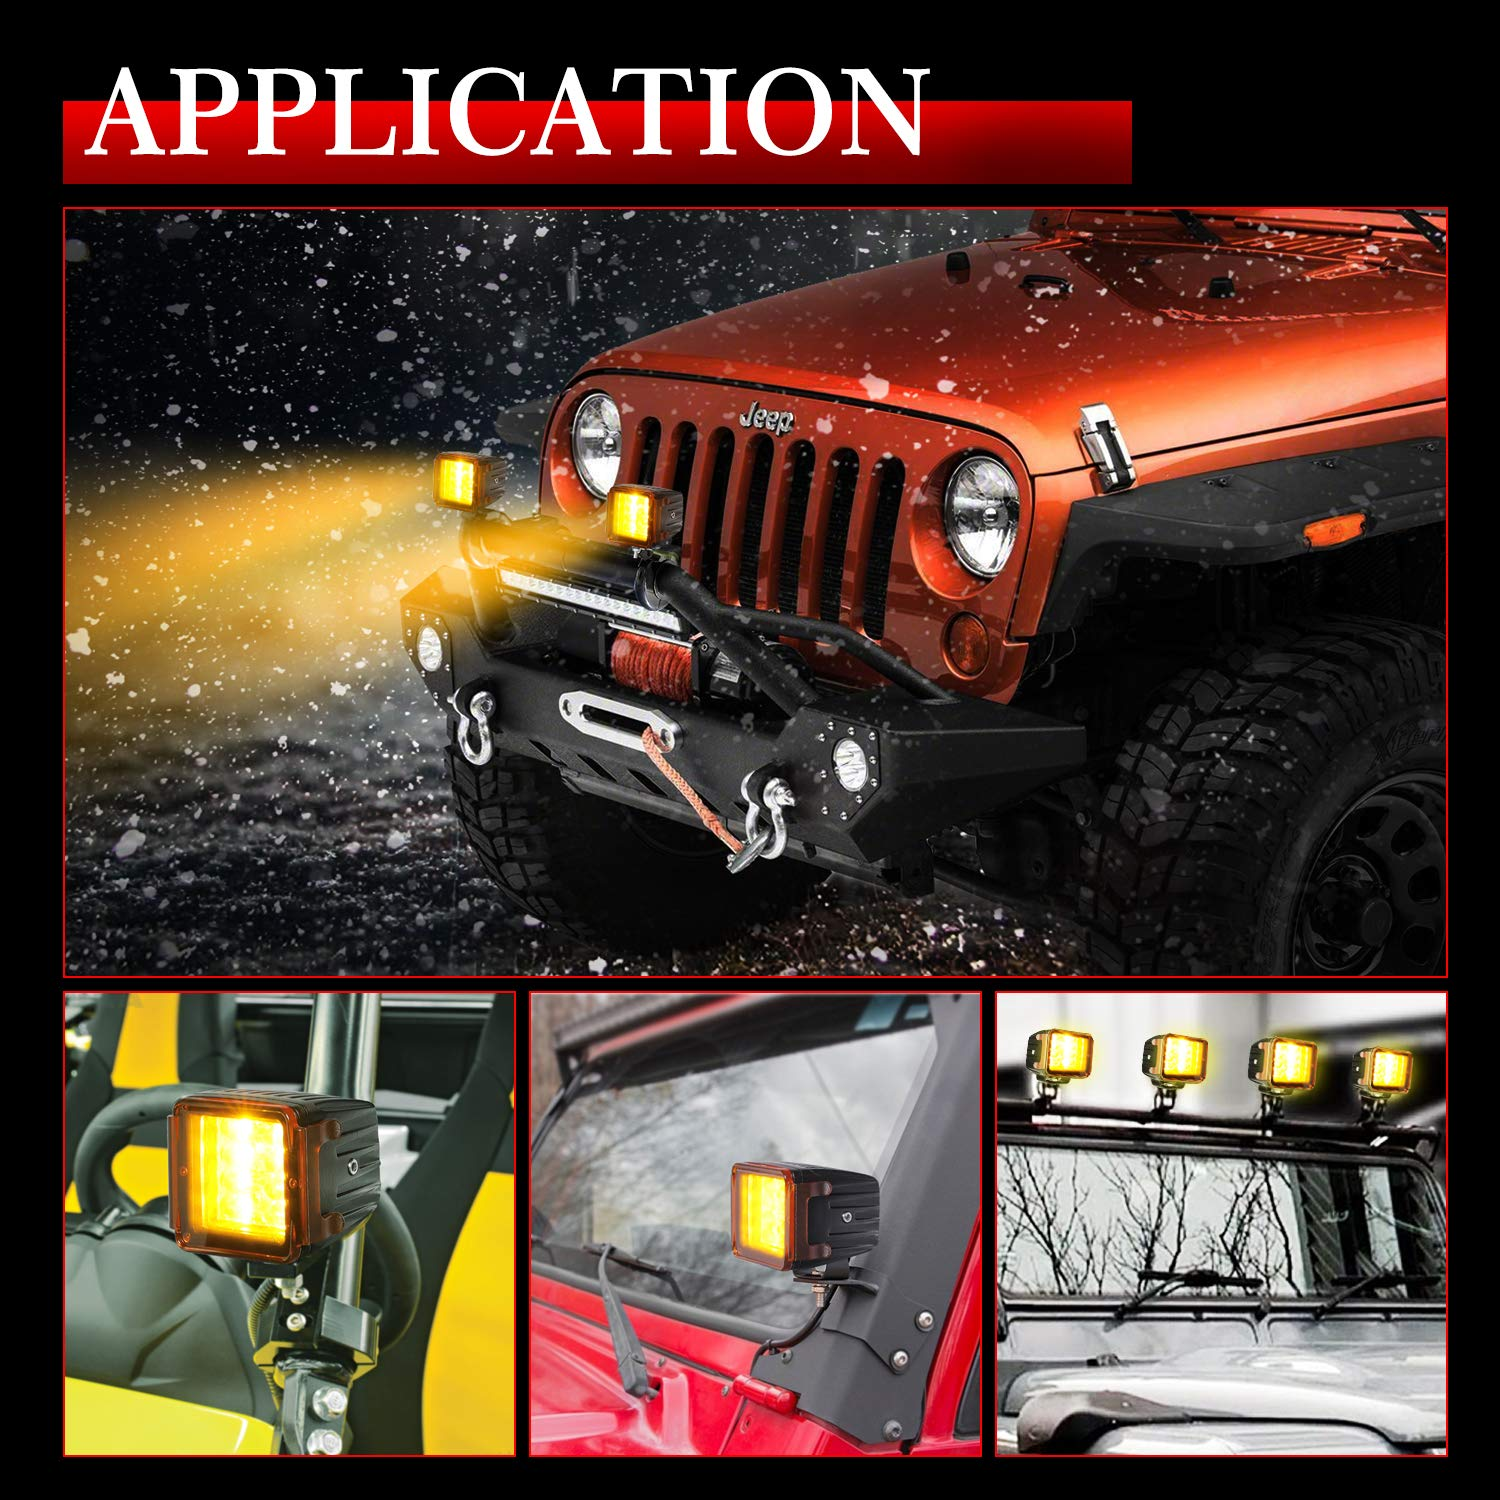 LED Pods Covers Black AKD Part 3 Inch Offroad Driving Lights LED Pods Work Lights Cover Light Bar Covers LED Cubes Covers PC Protective Lens Covers for Jeep SUV ATV UTV Marine